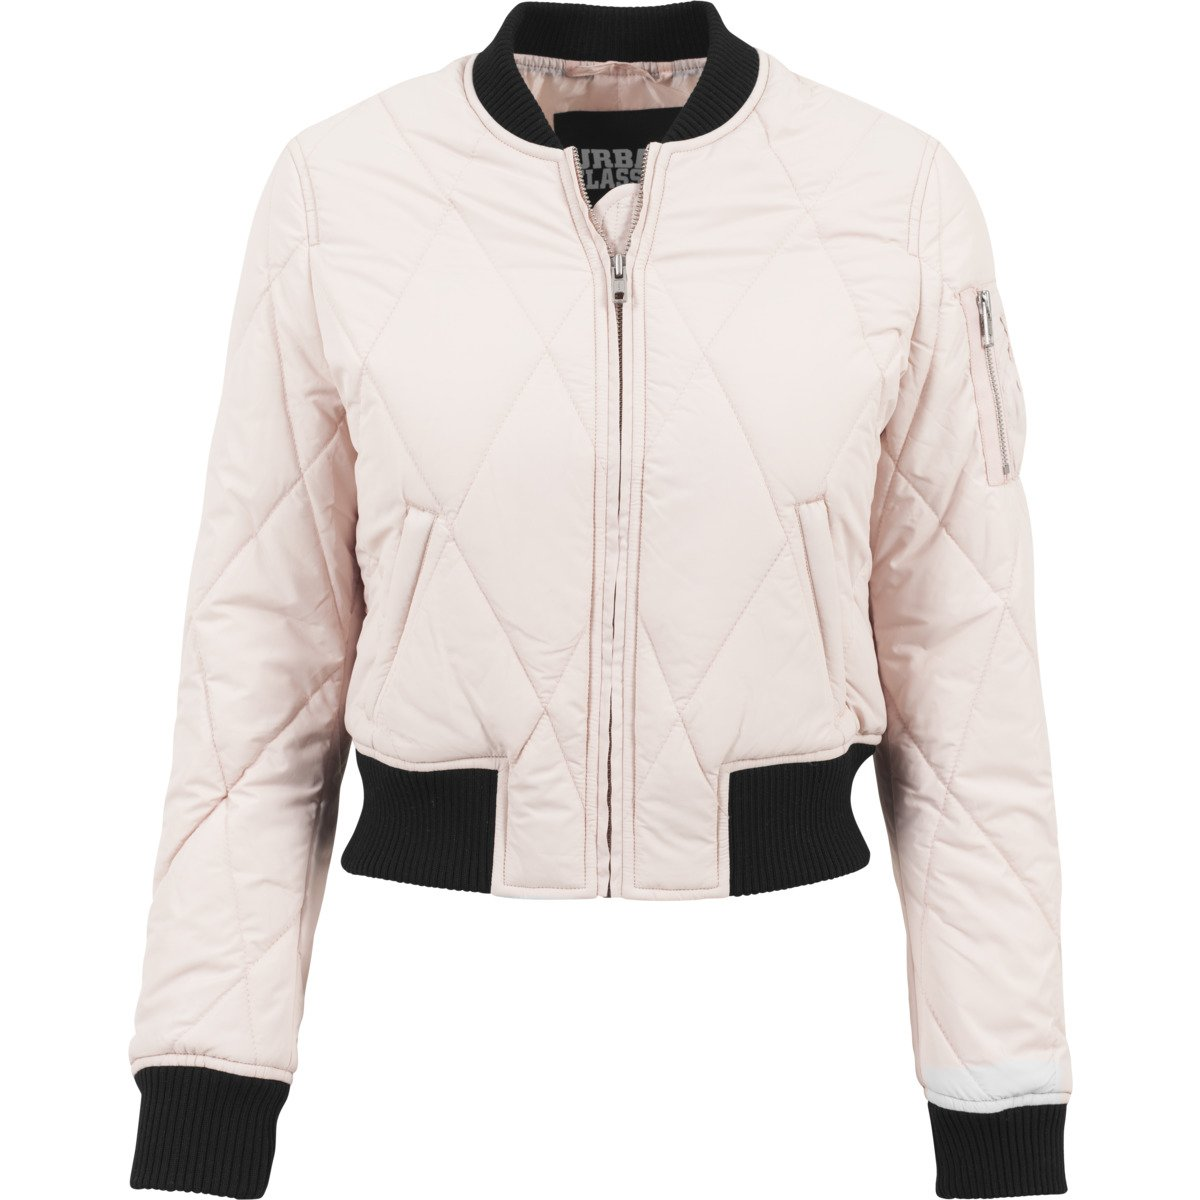 Urban Classics Ladies  Diamond Quilt Shorts Bomber Jacket Light Pink   Black  L. About this product. Picture 1 of 5  Picture 2 of 5 ... ba578d6d26